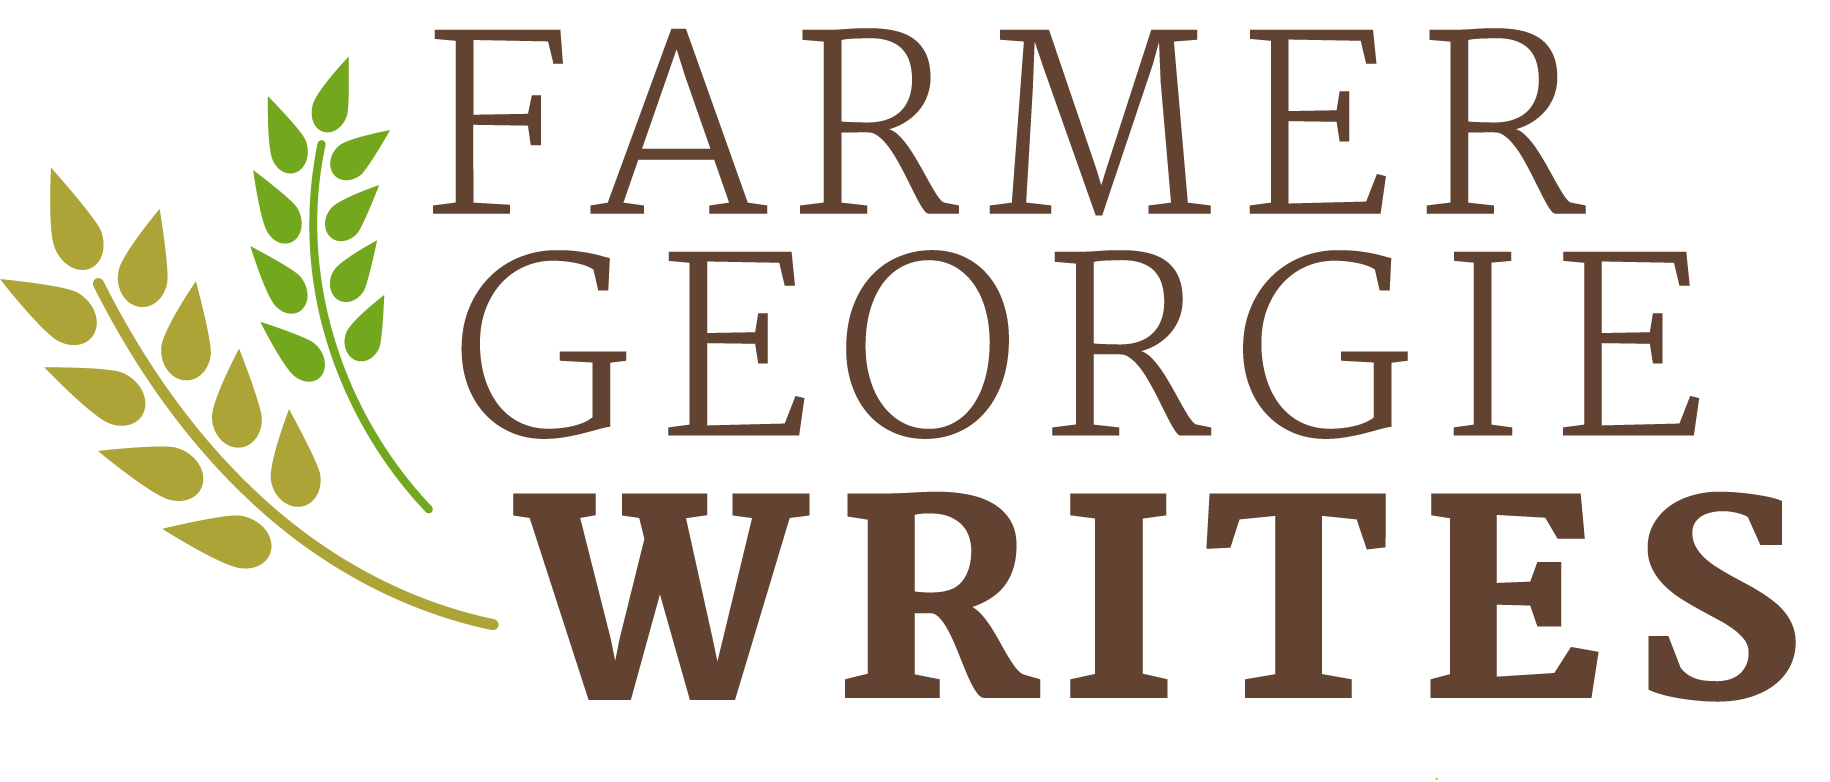 Farmer Georgie Writes